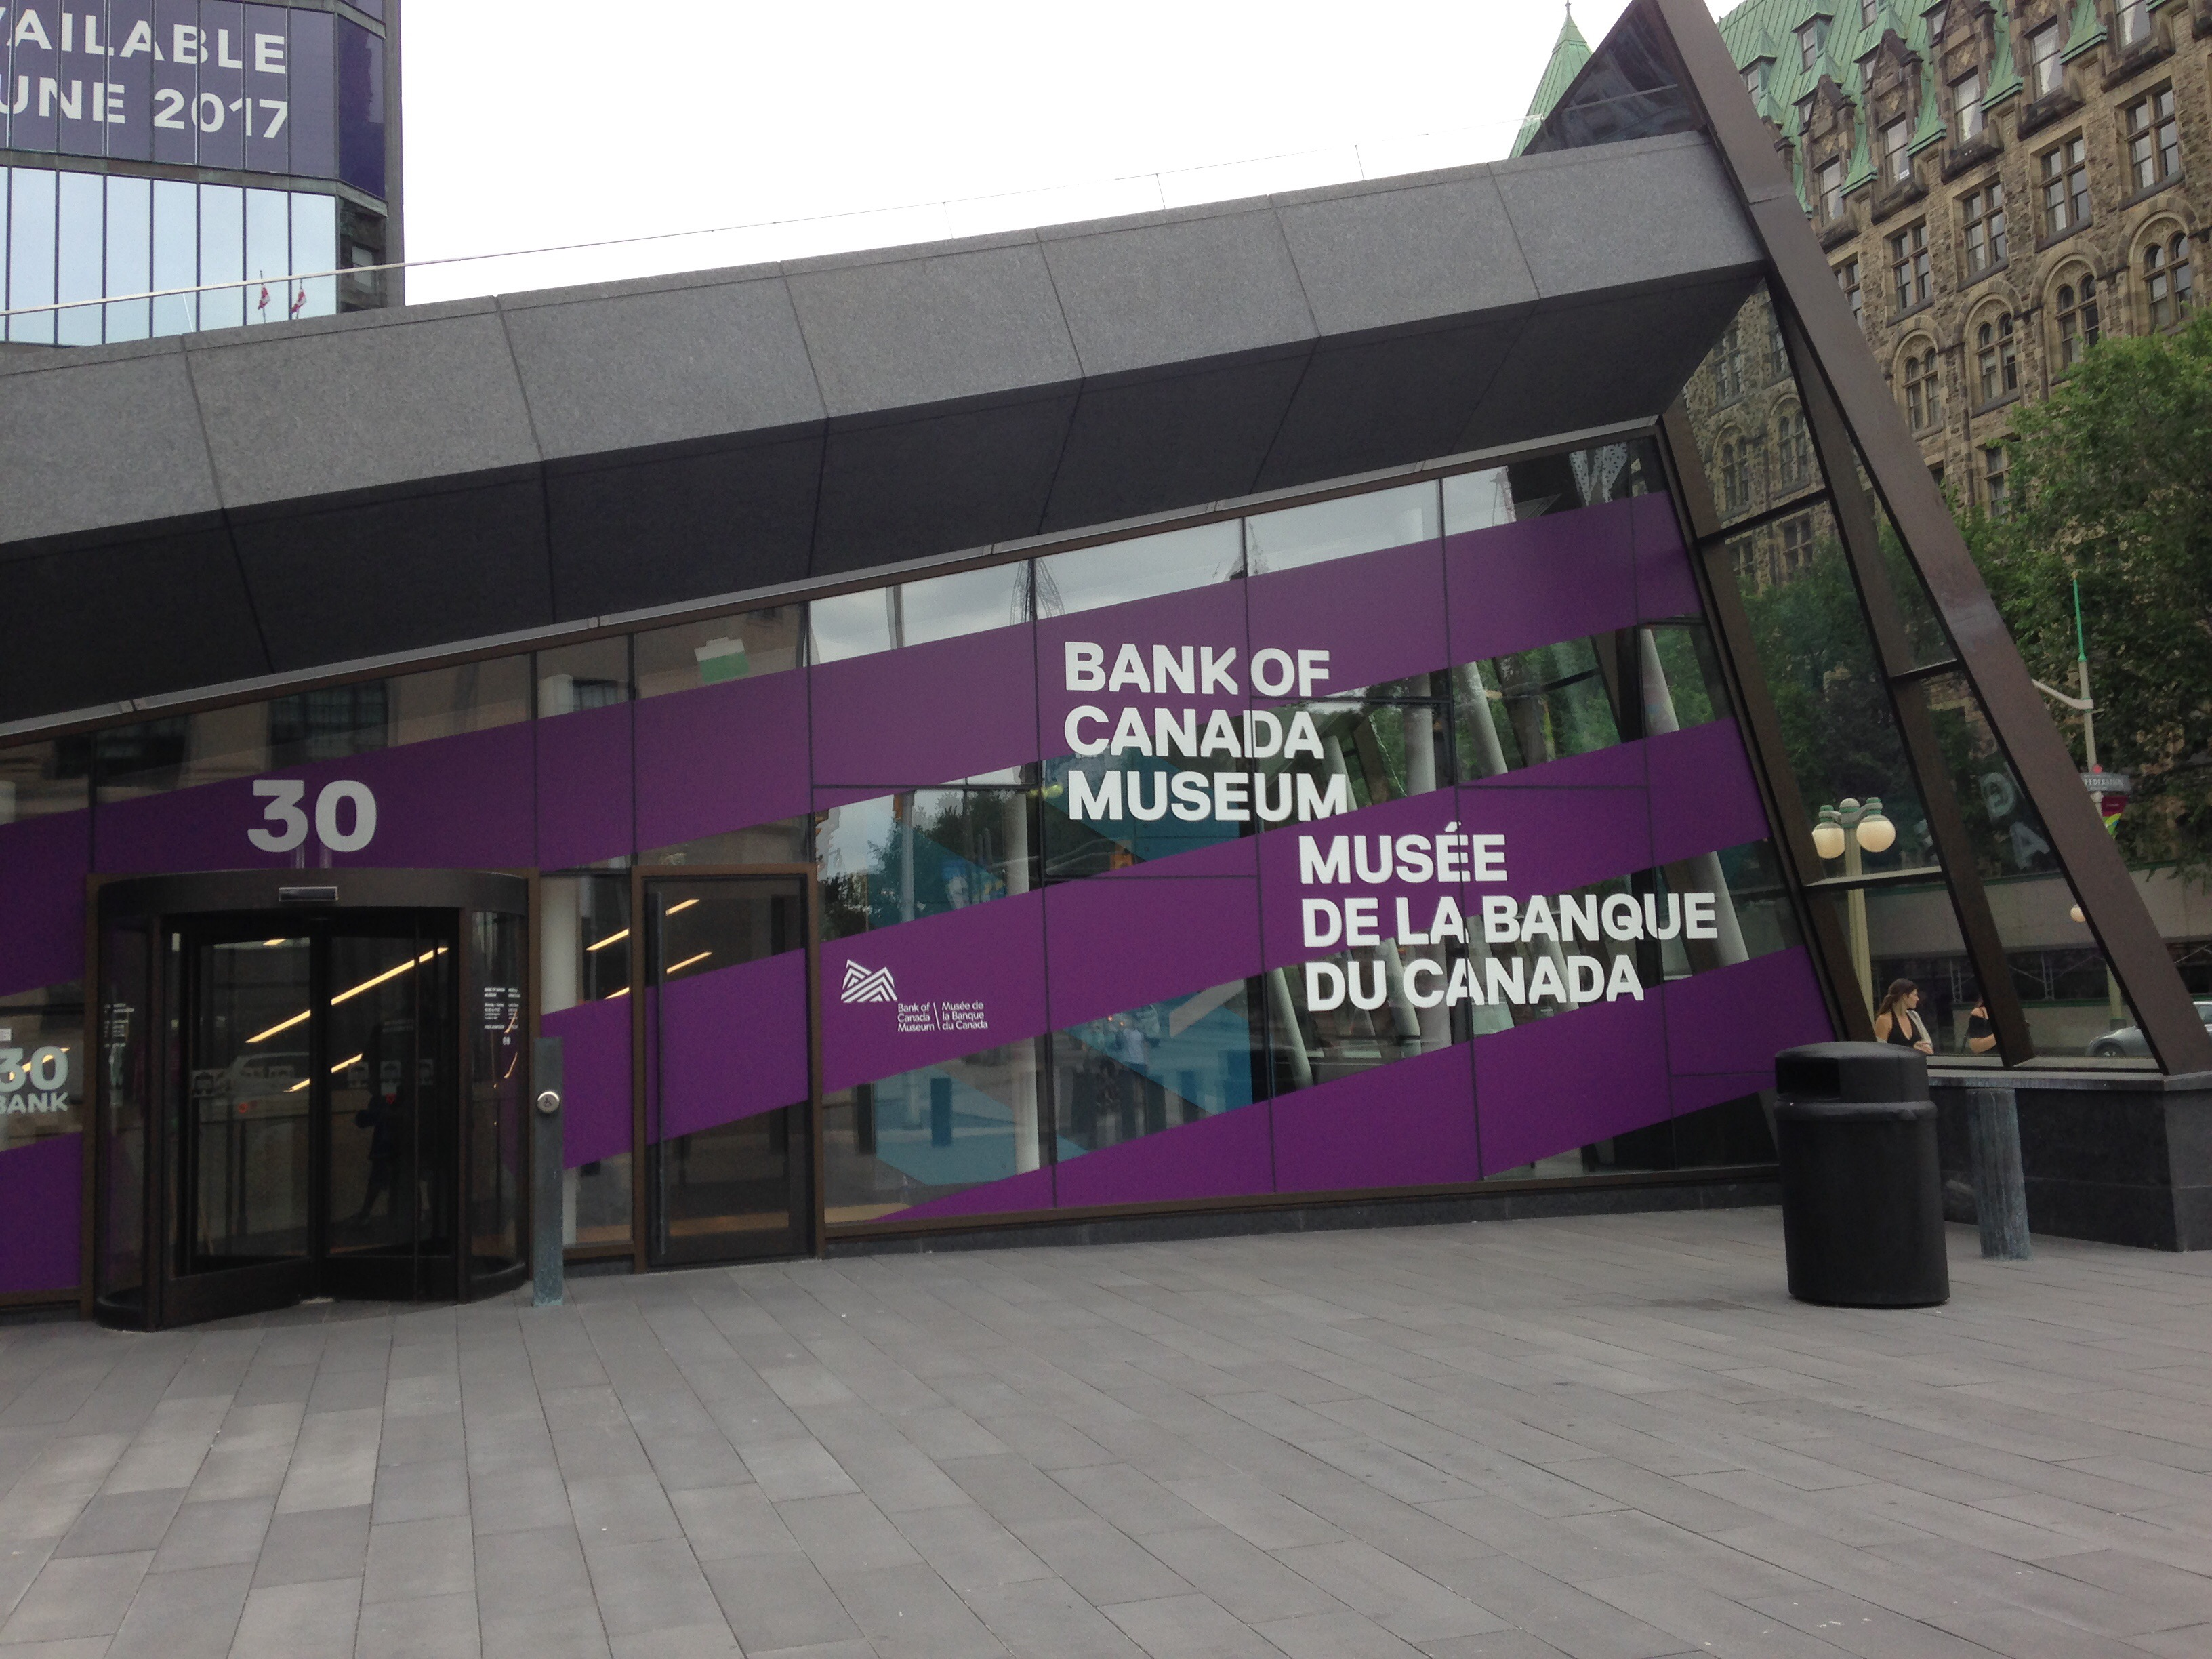 Bank of Canada Museum